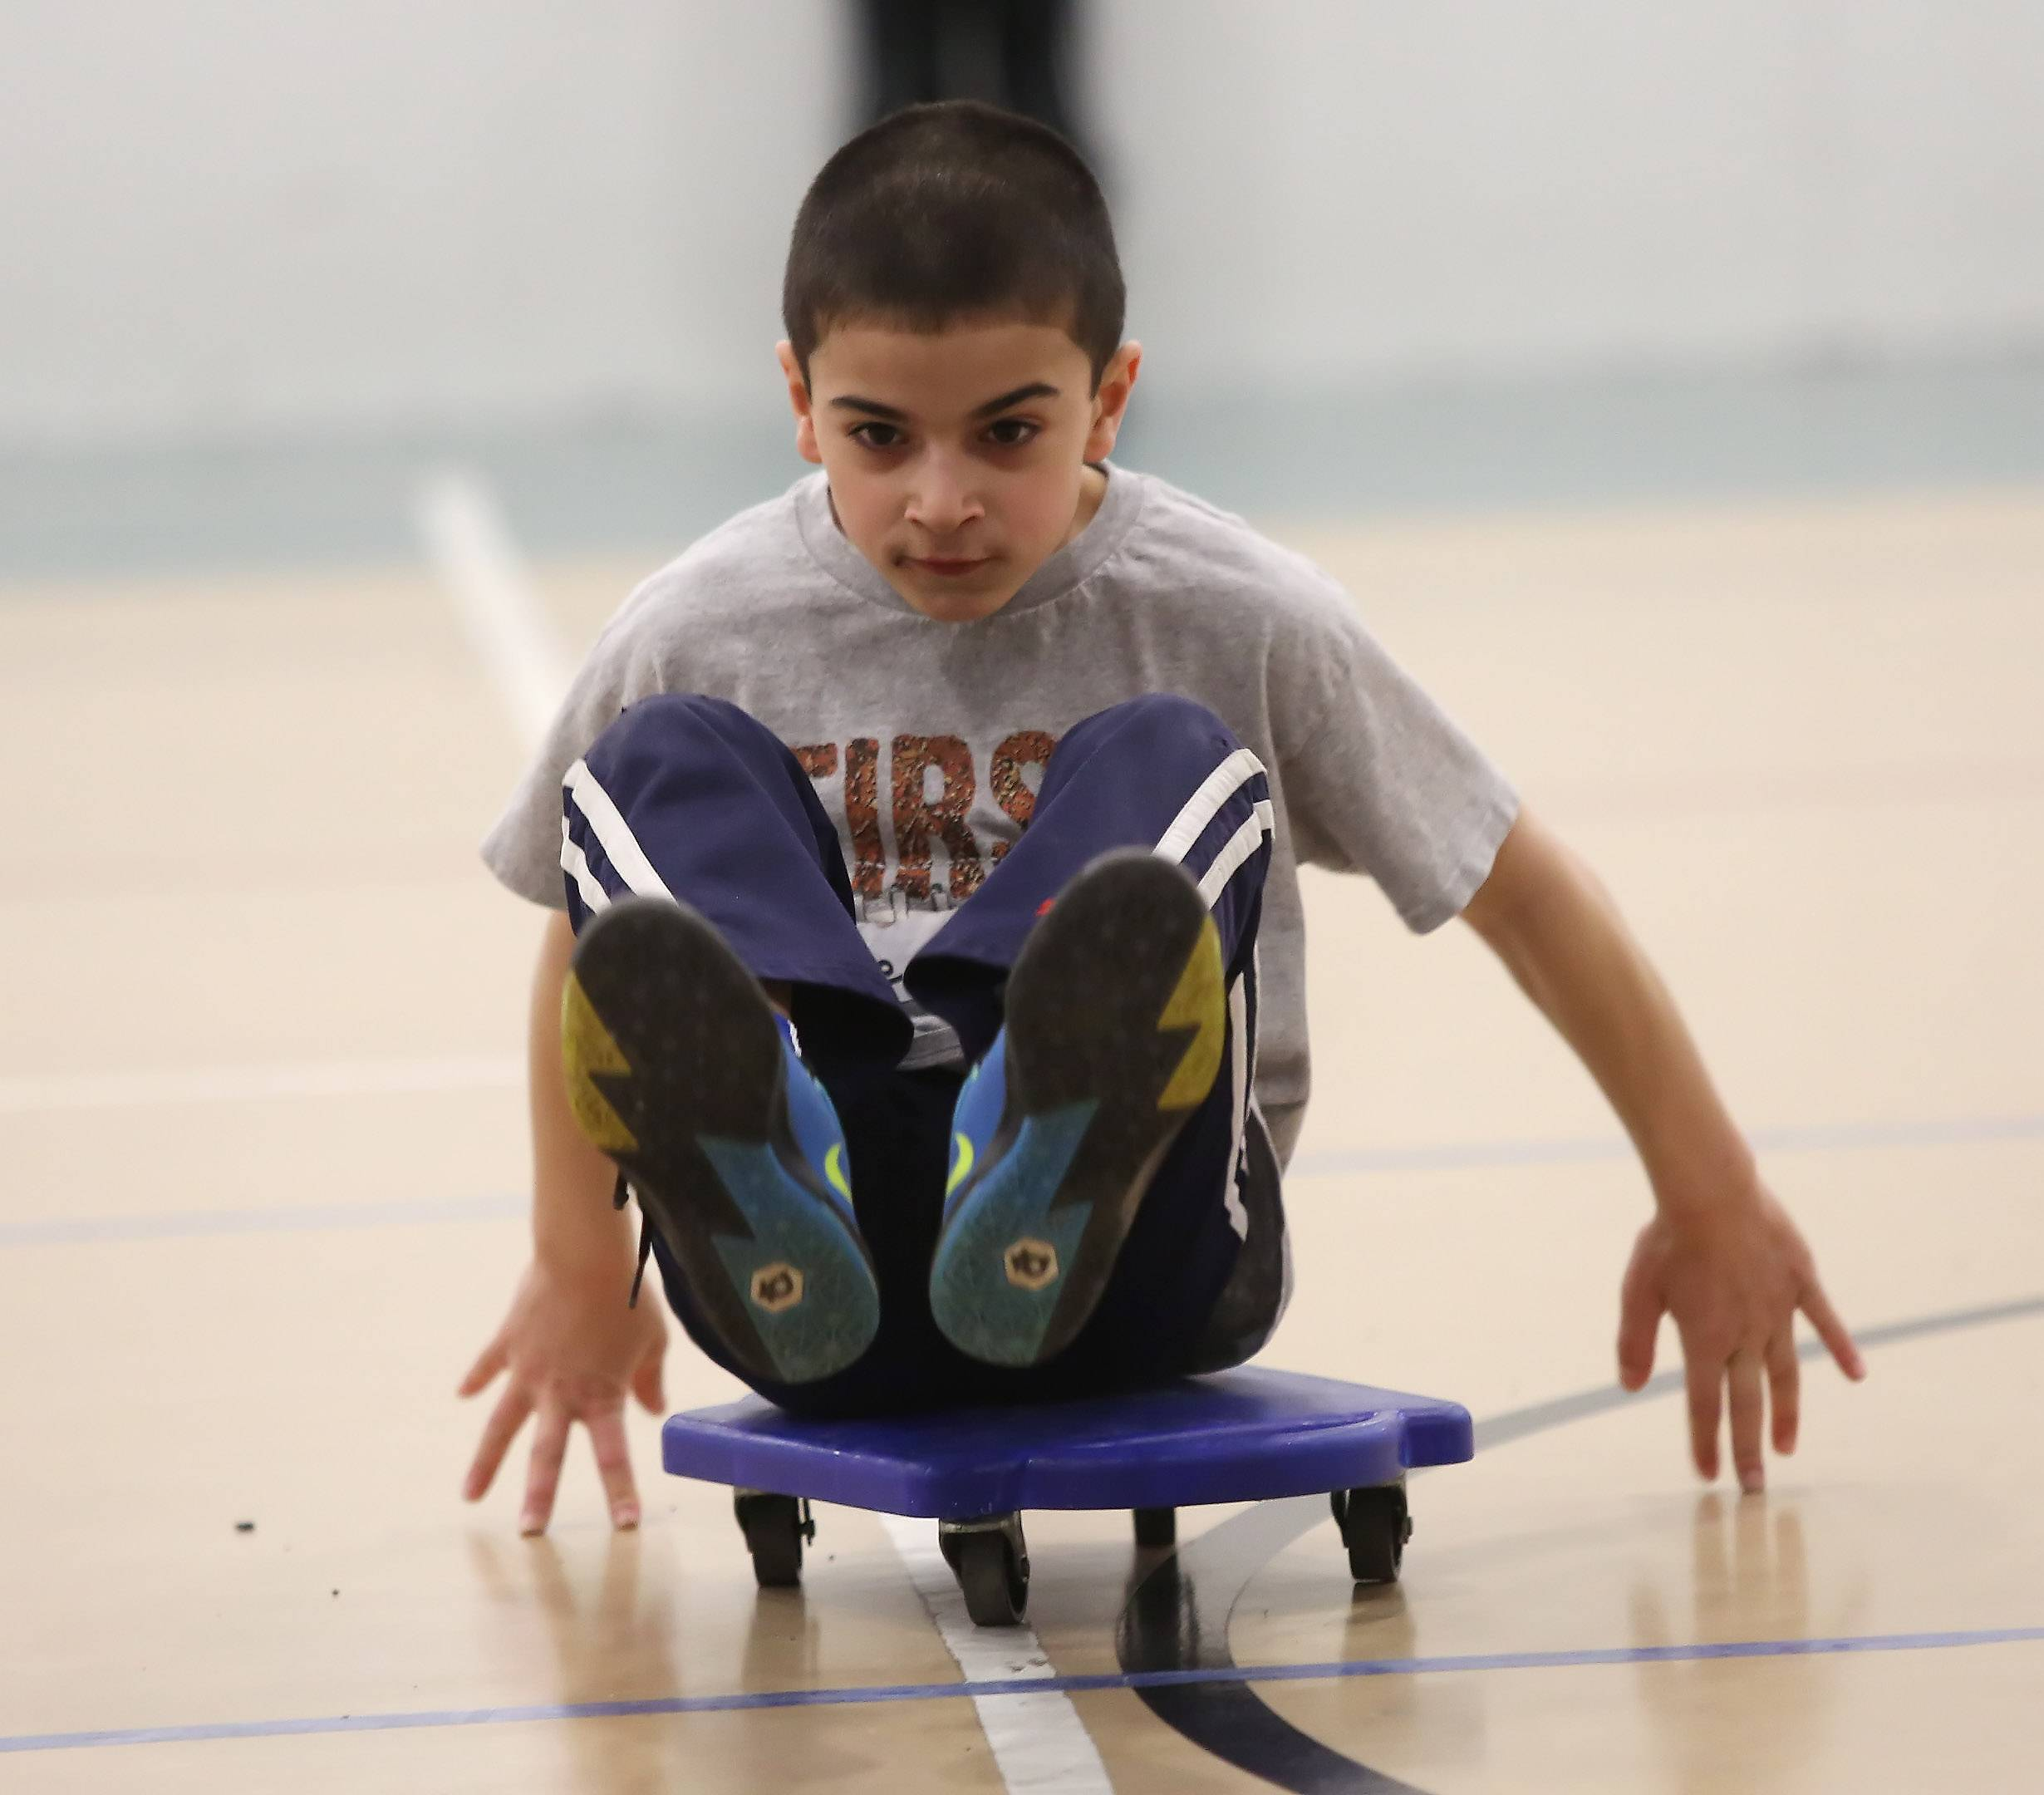 Kyle Lynch, 8, of Vernon Hills, participates in scooter races Monday during Days Off From School Camp at the Libertyville Sports Complex. Children in kindergarten through sixth grade spent the first day of spring break playing games and various sports, including climbing the rock wall.